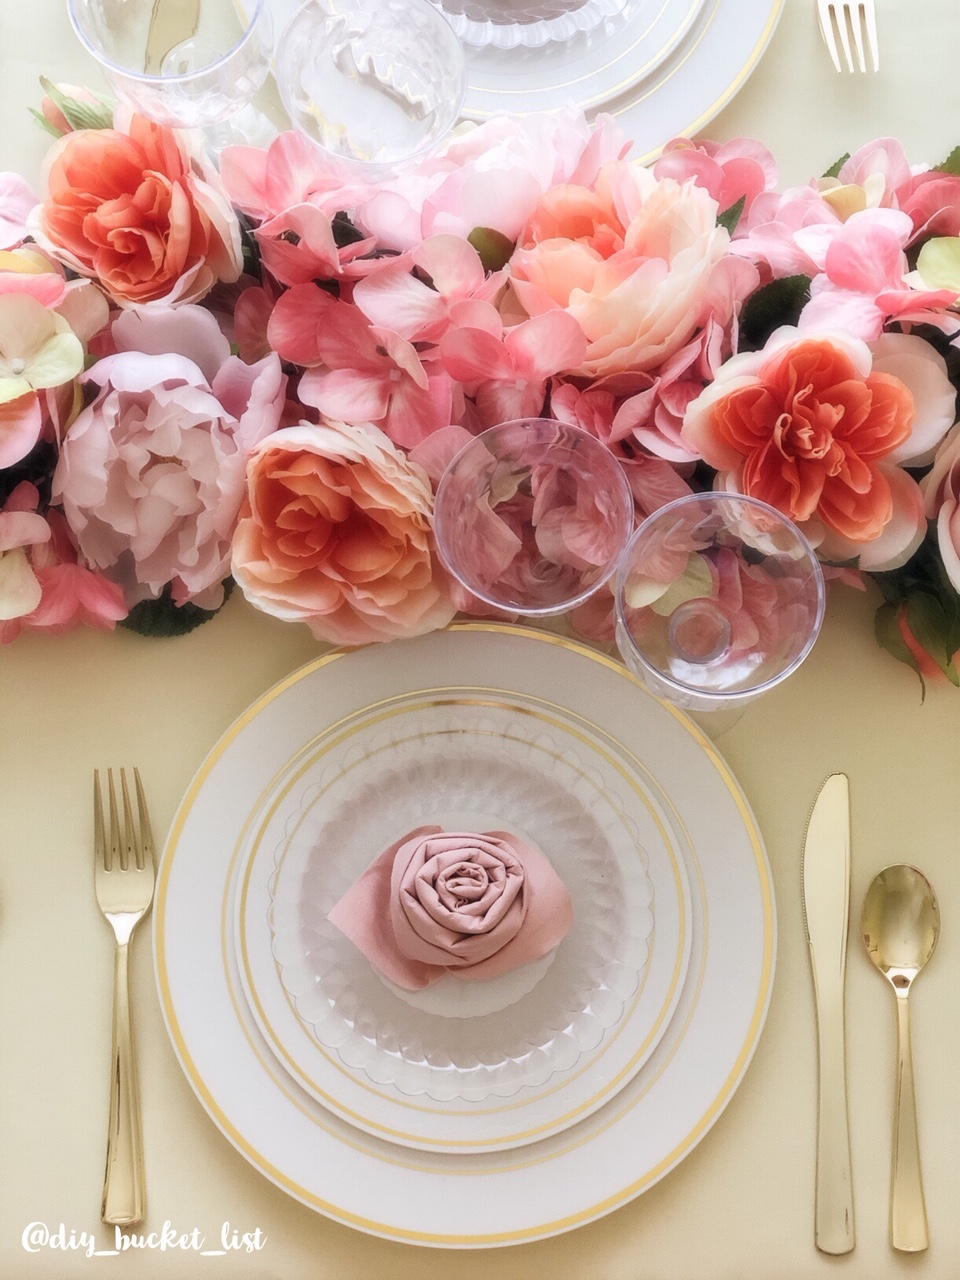 Spring table setting using Fineline Settings product line